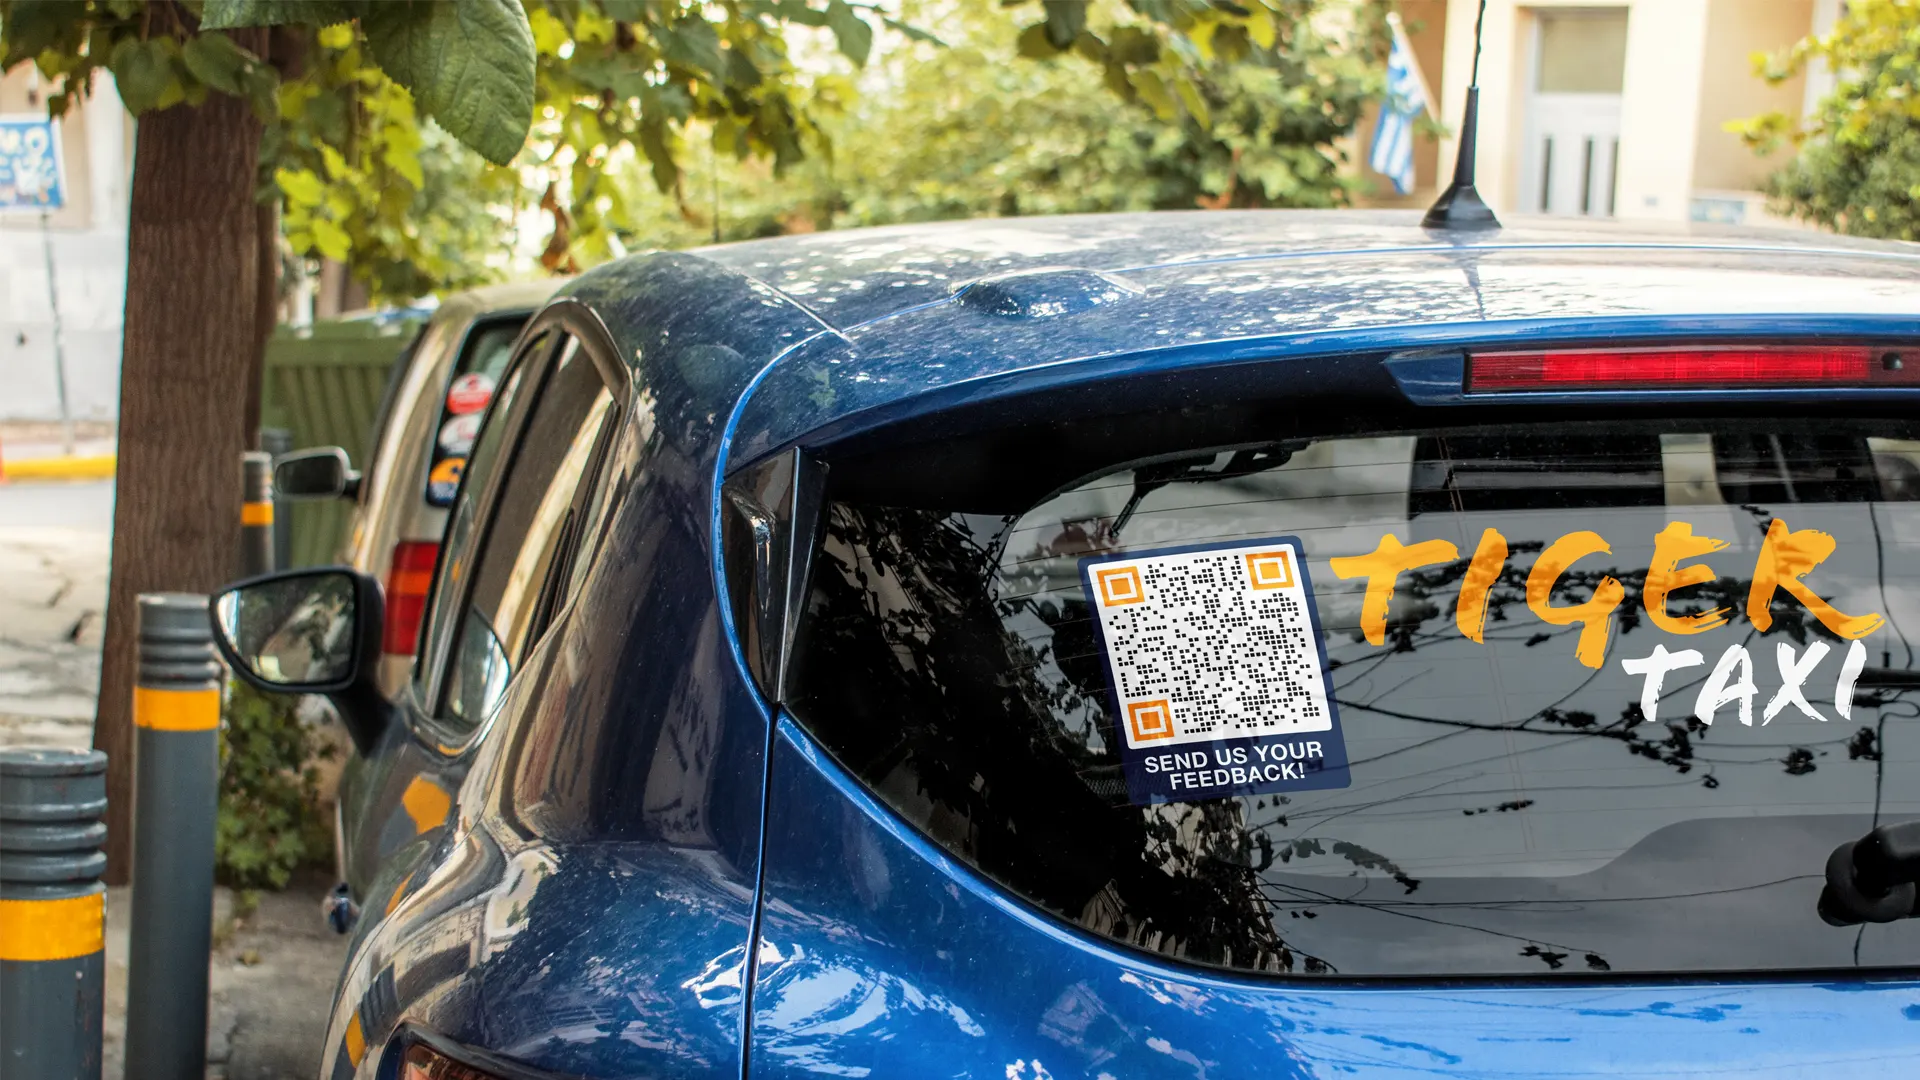 ask for feedback using qr code stickers